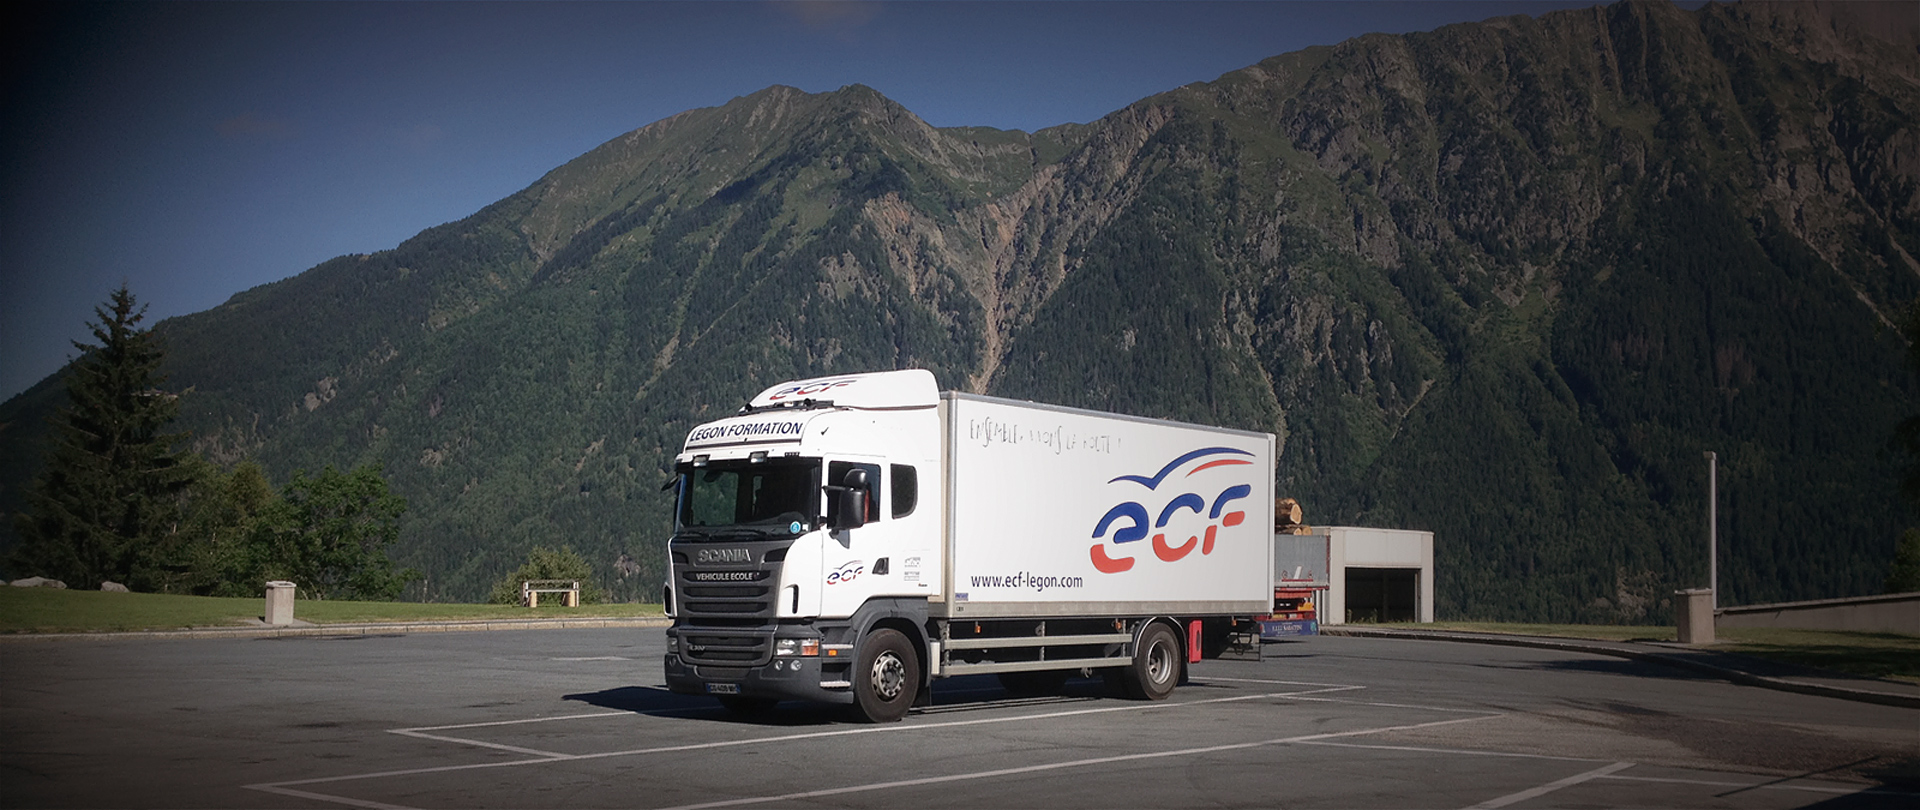 camion-ecf